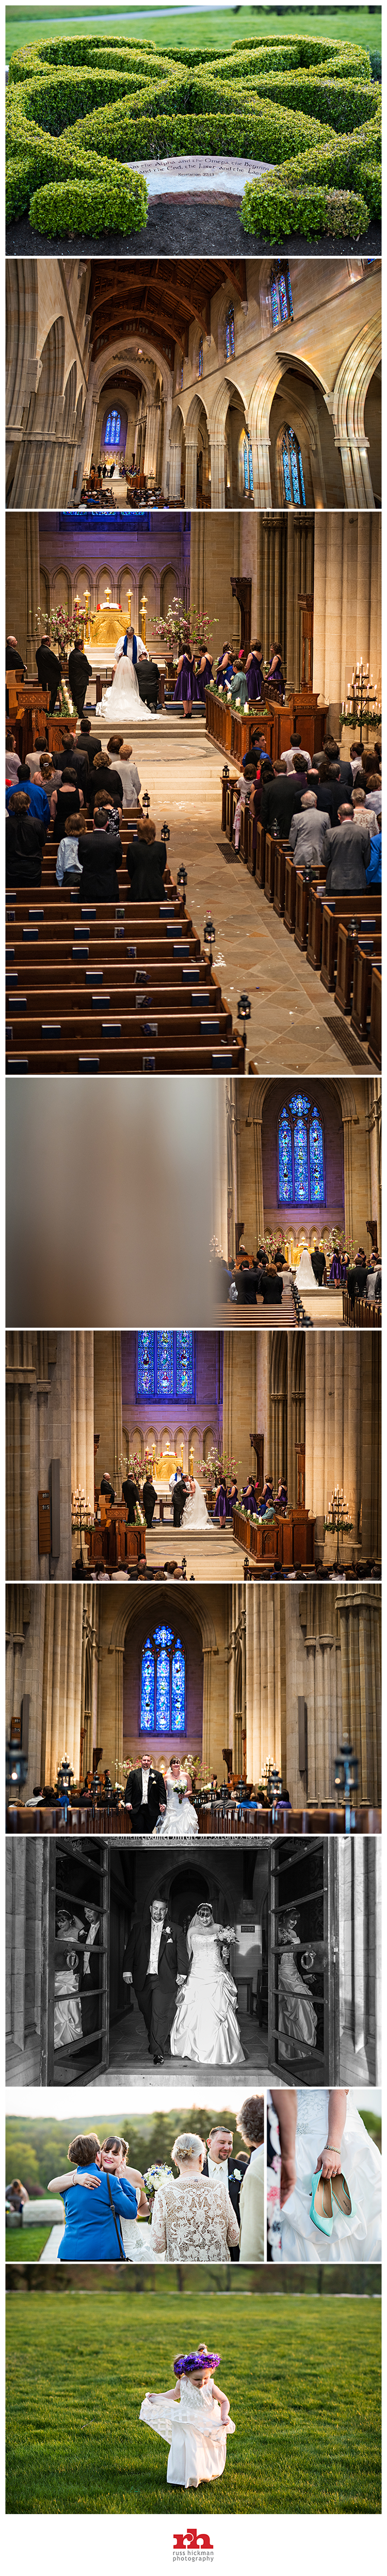 Philadelphia Wedding Photographer RTWB0004